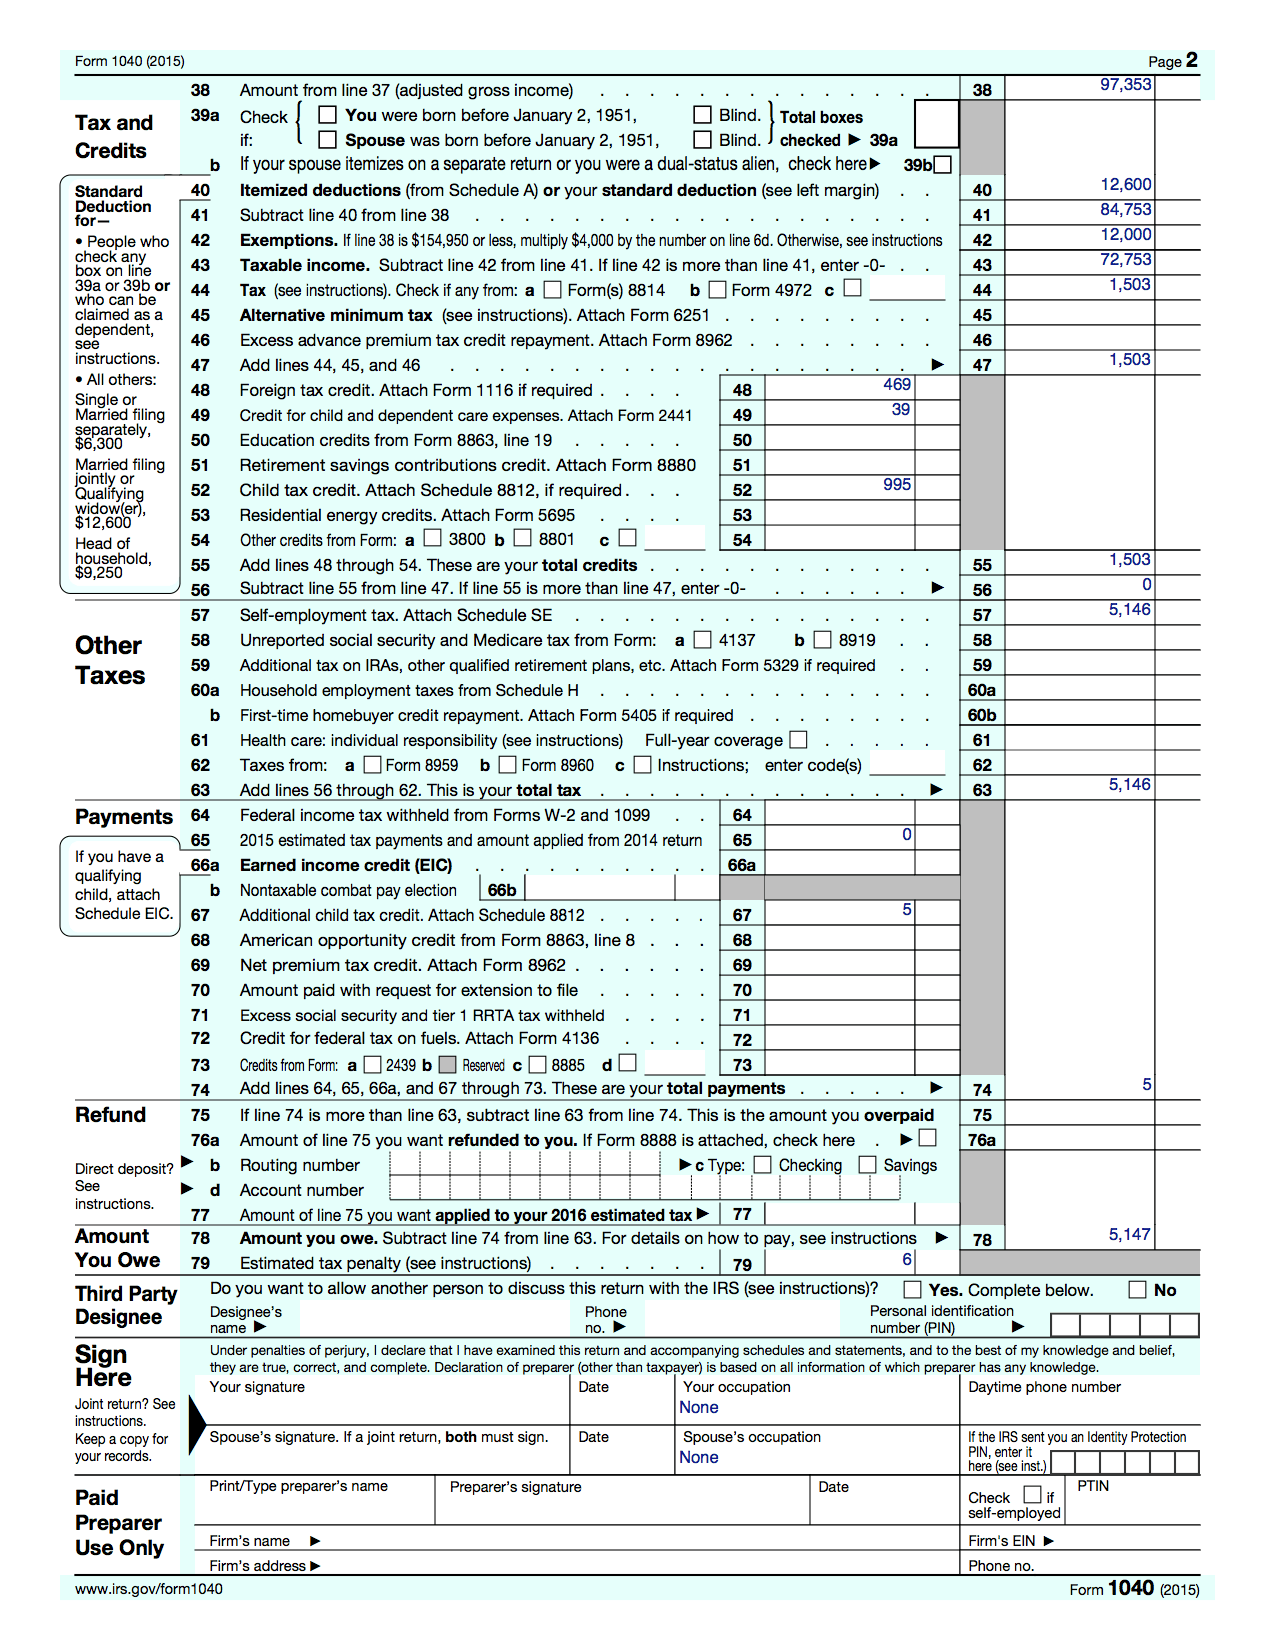 worksheet Depreciation Worksheet 2015 1040 irs depreciation worksheet printable blog the go curry cracker taxes cracker